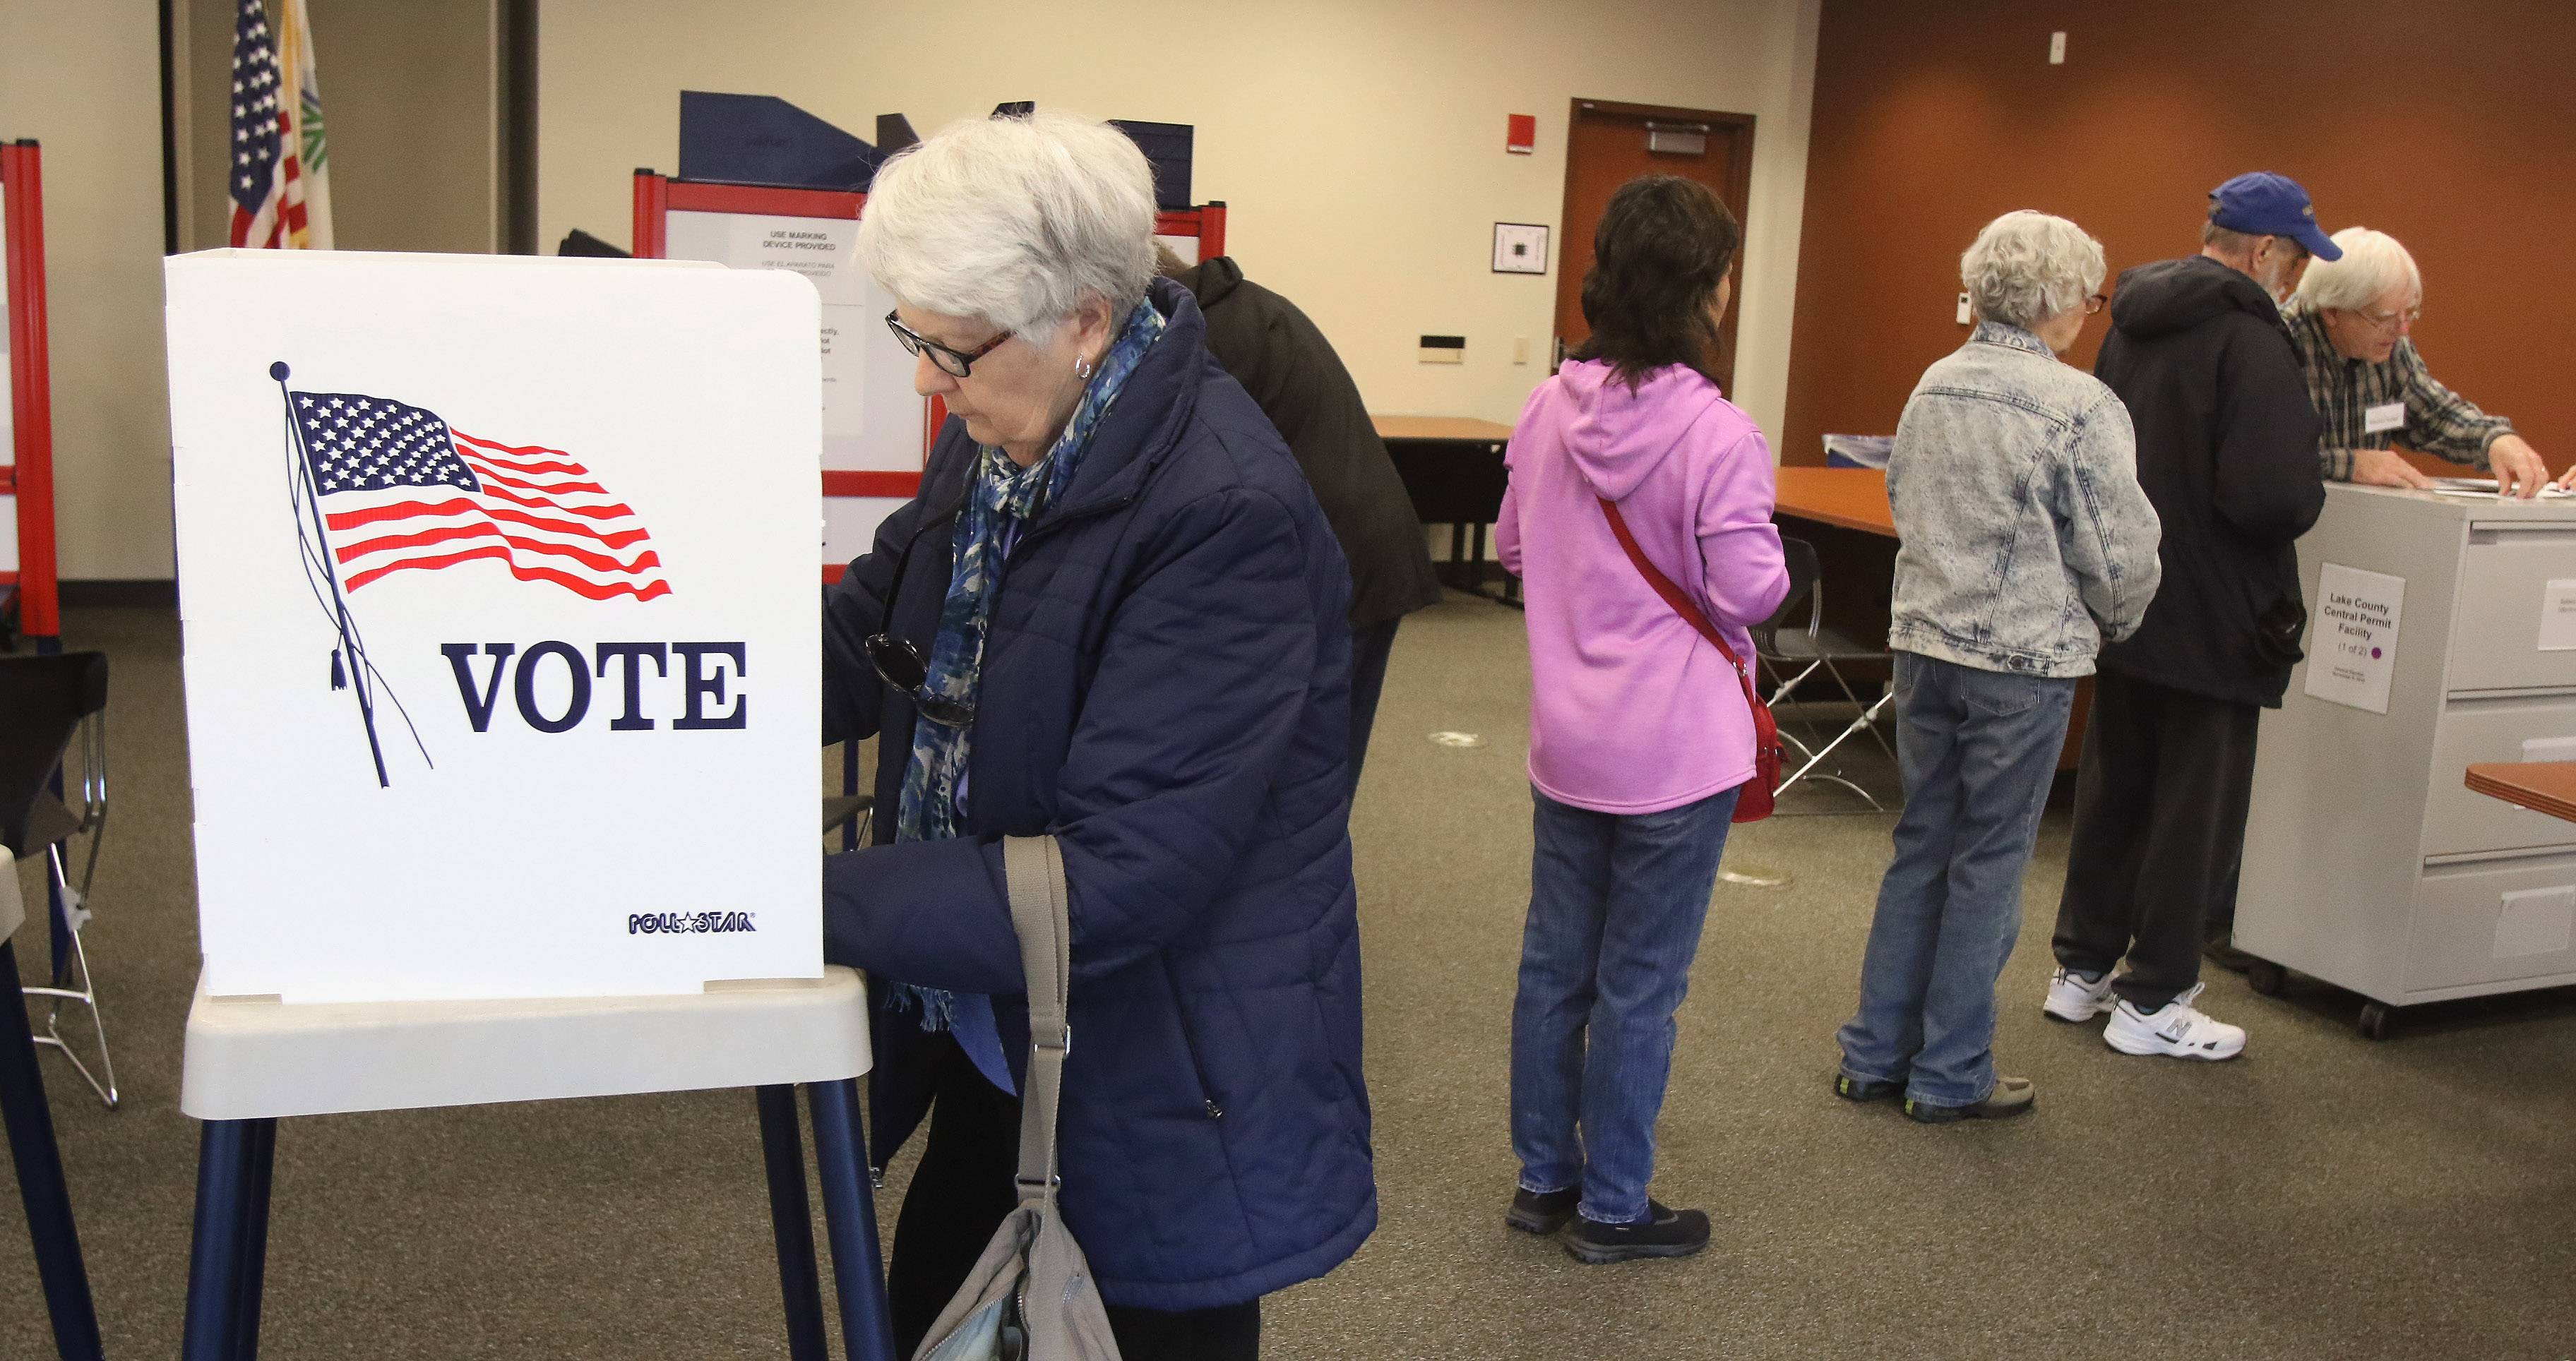 Maureen Watier of Libertyville votes Tuesday at the Lake County Central Permit Facility in Libertyville. Early voting began Monday at 14 sites across the county and continues through Nov. 7.